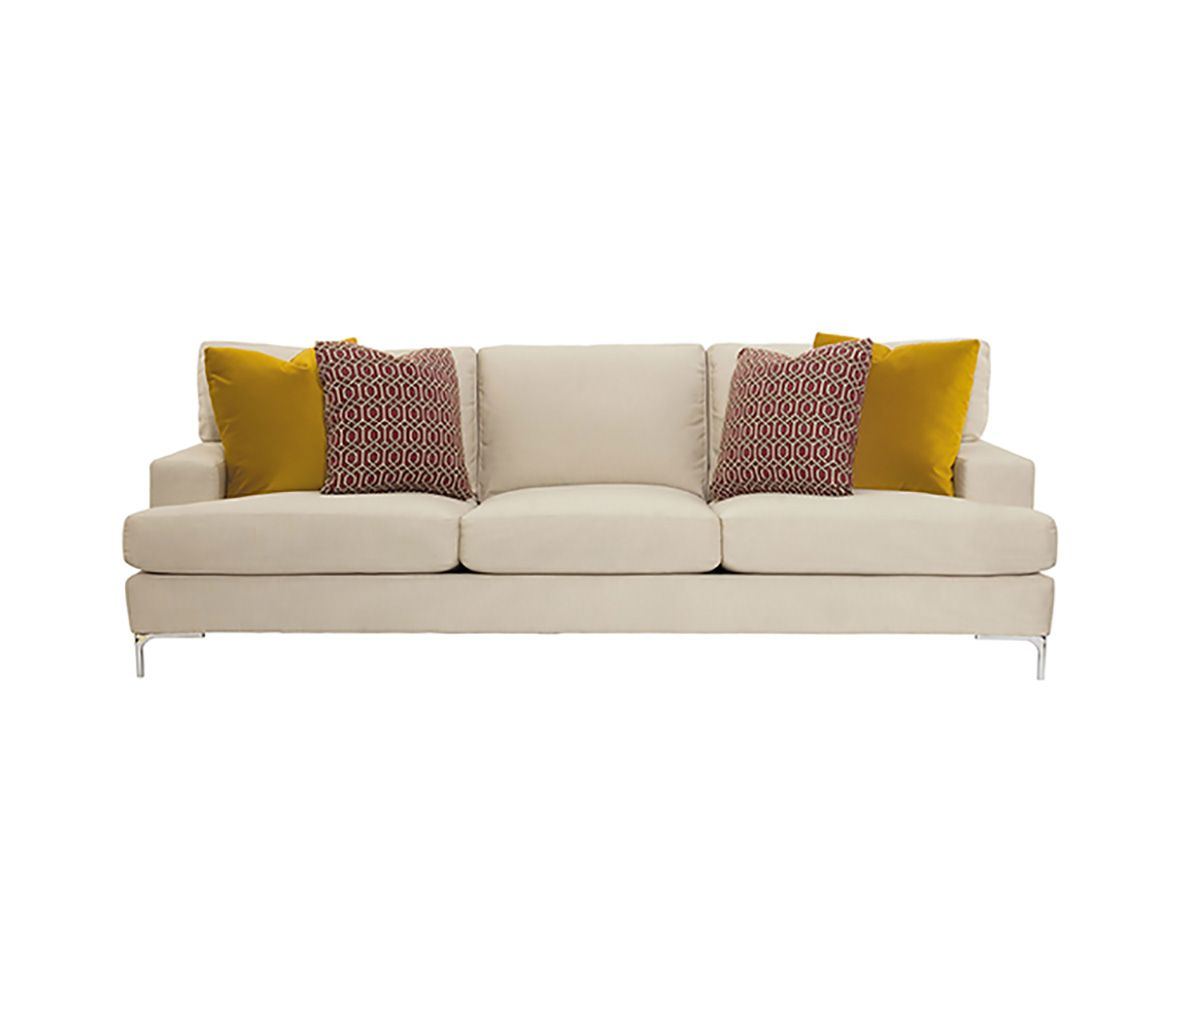 Carver Sofa Images Reverse Search